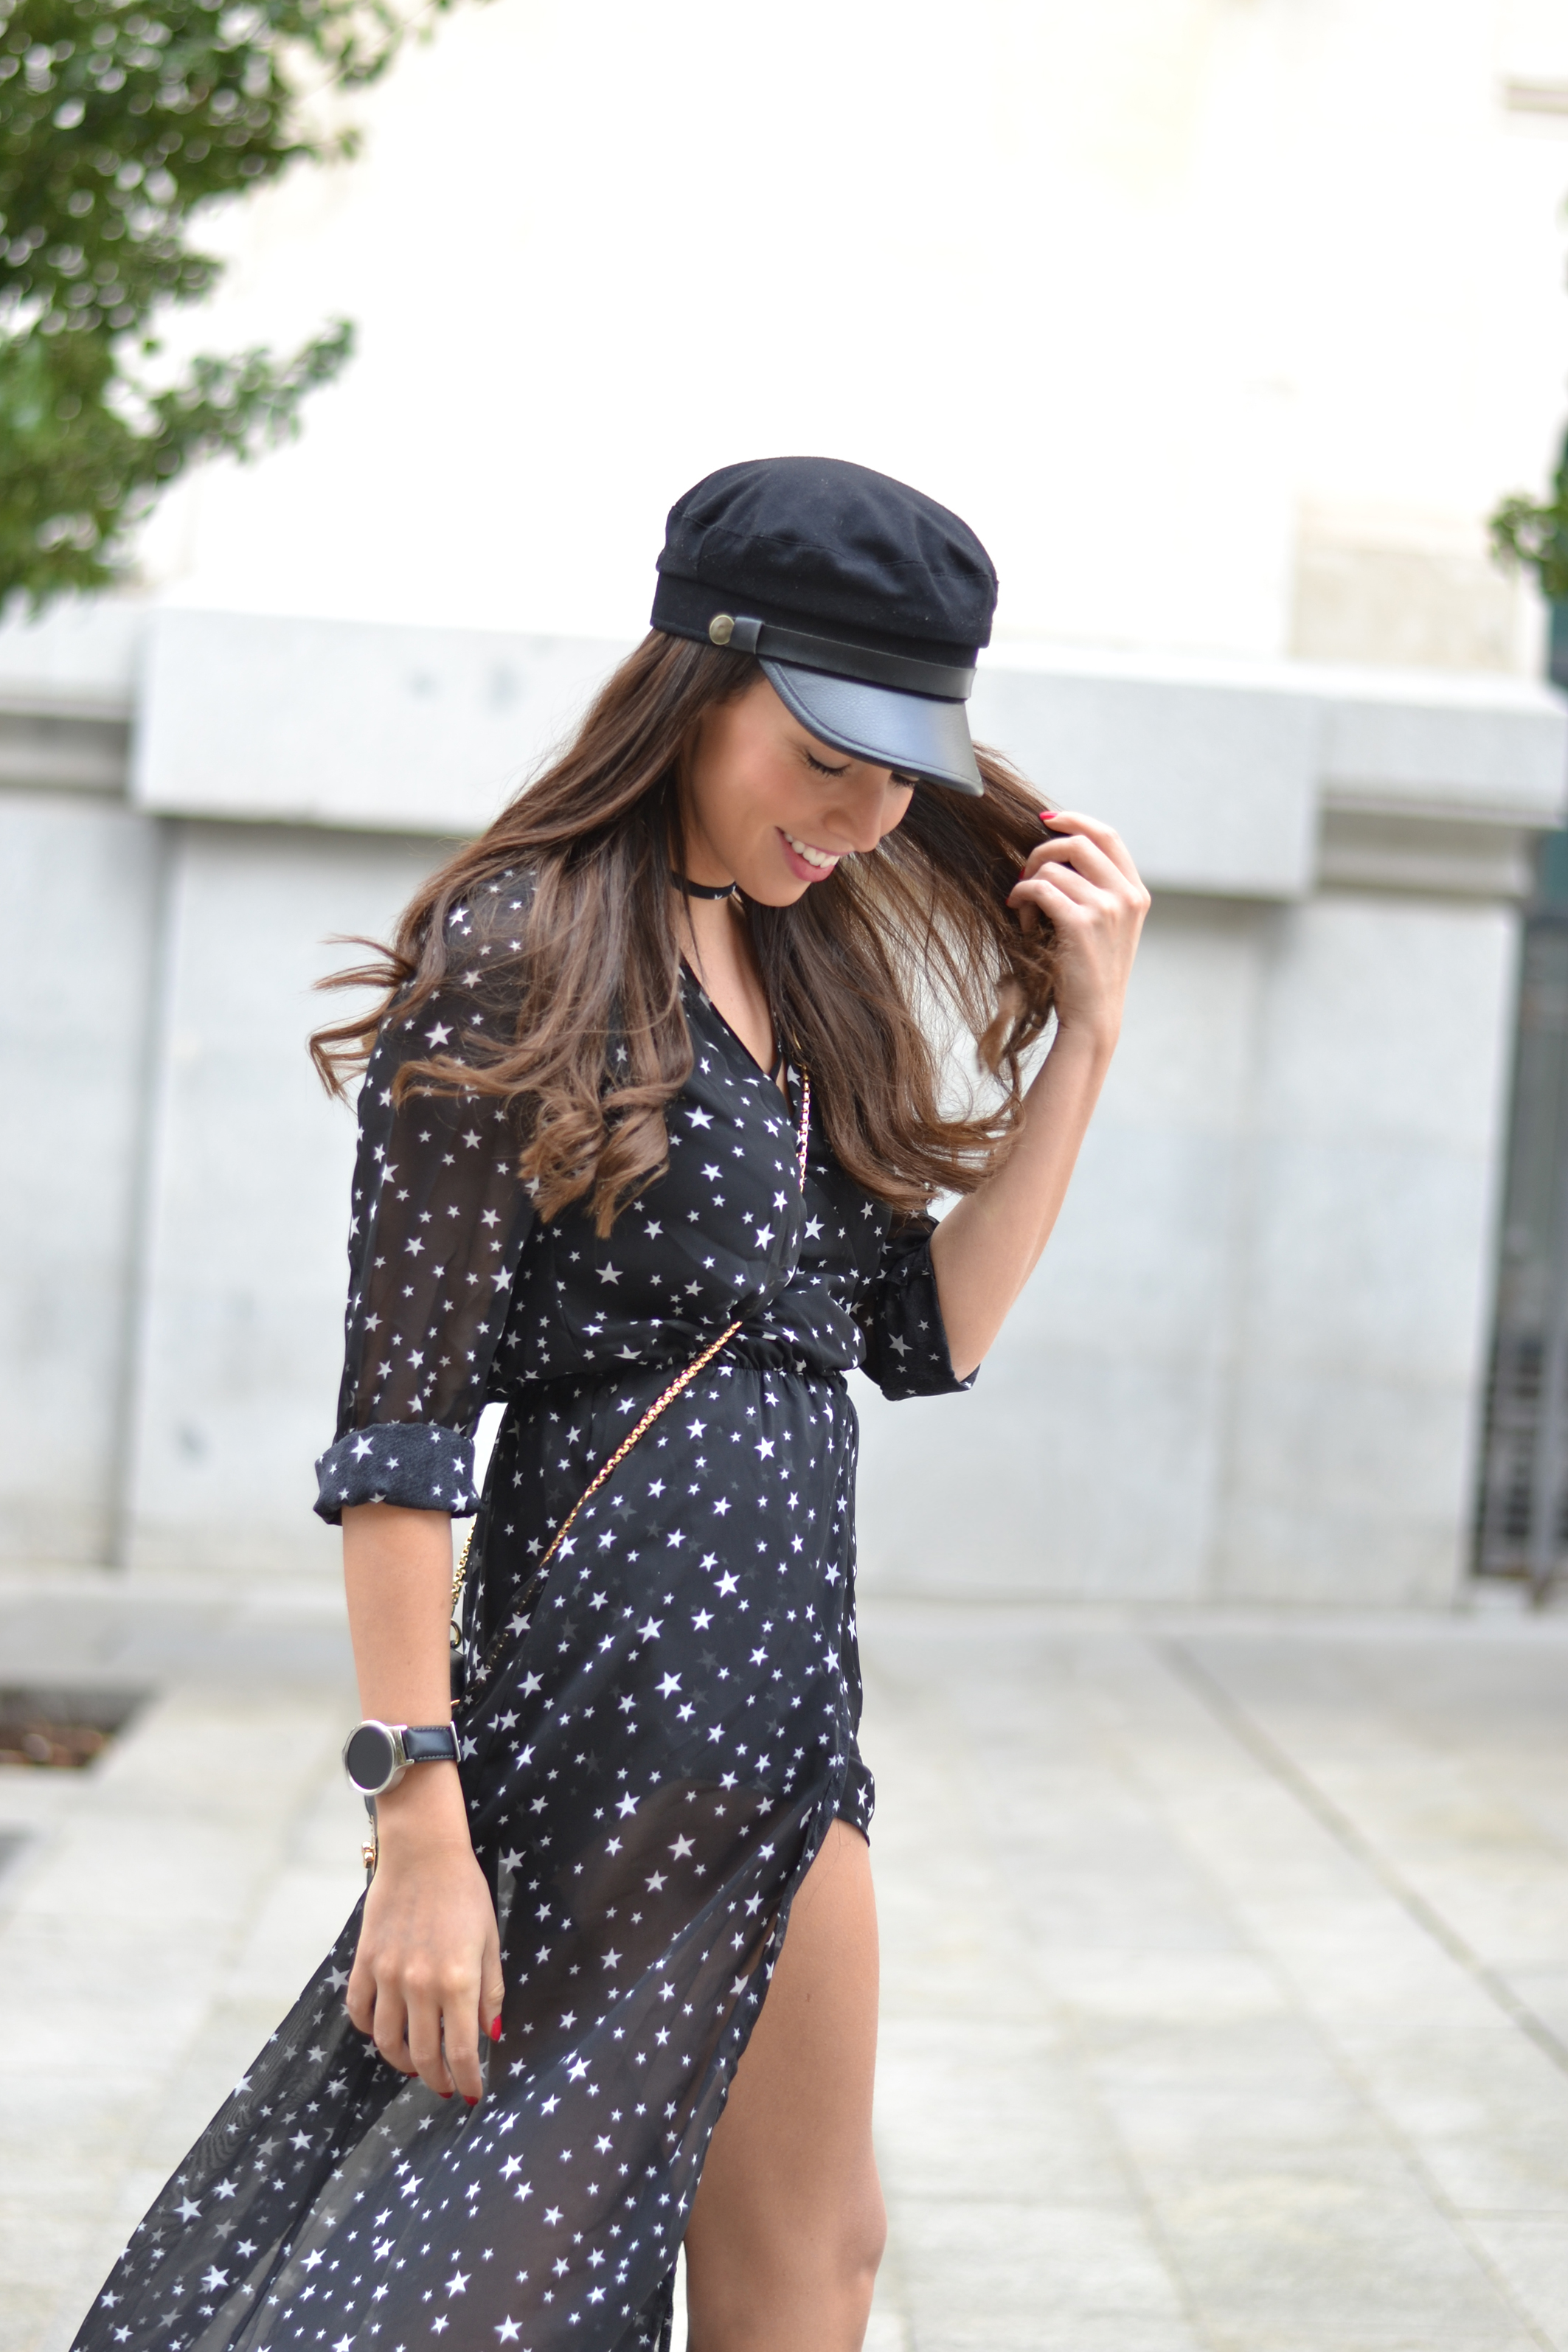 Street style, black long dress, stars print, military cap, white sneakers